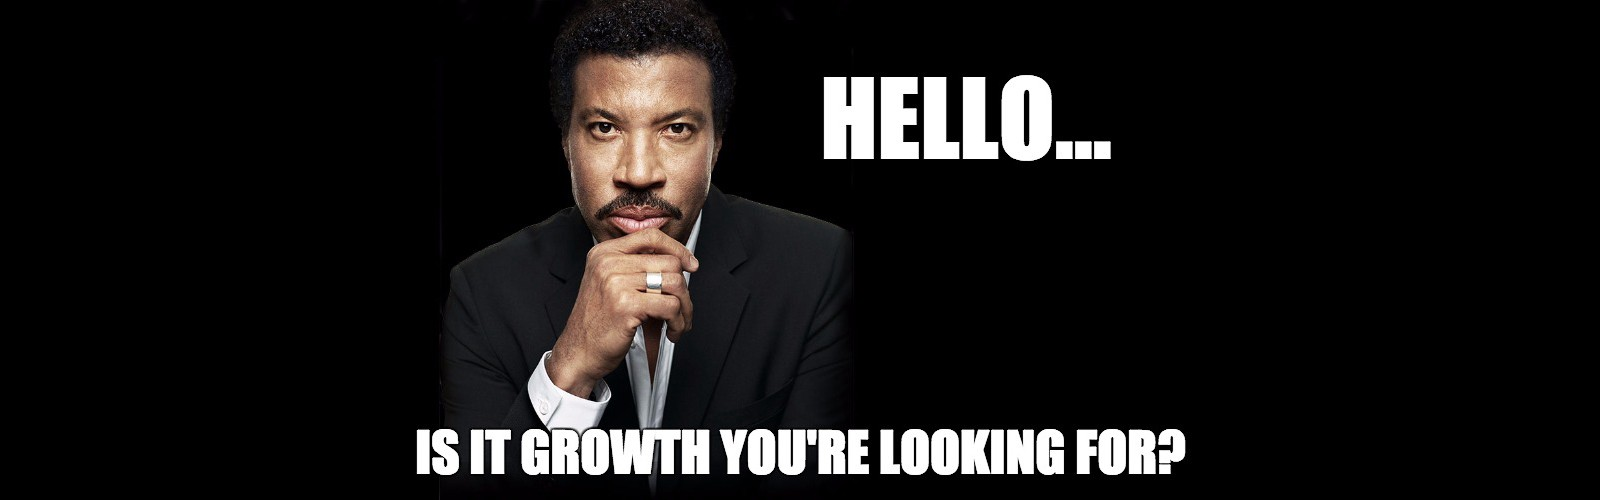 hello, is it growth you're looking for?